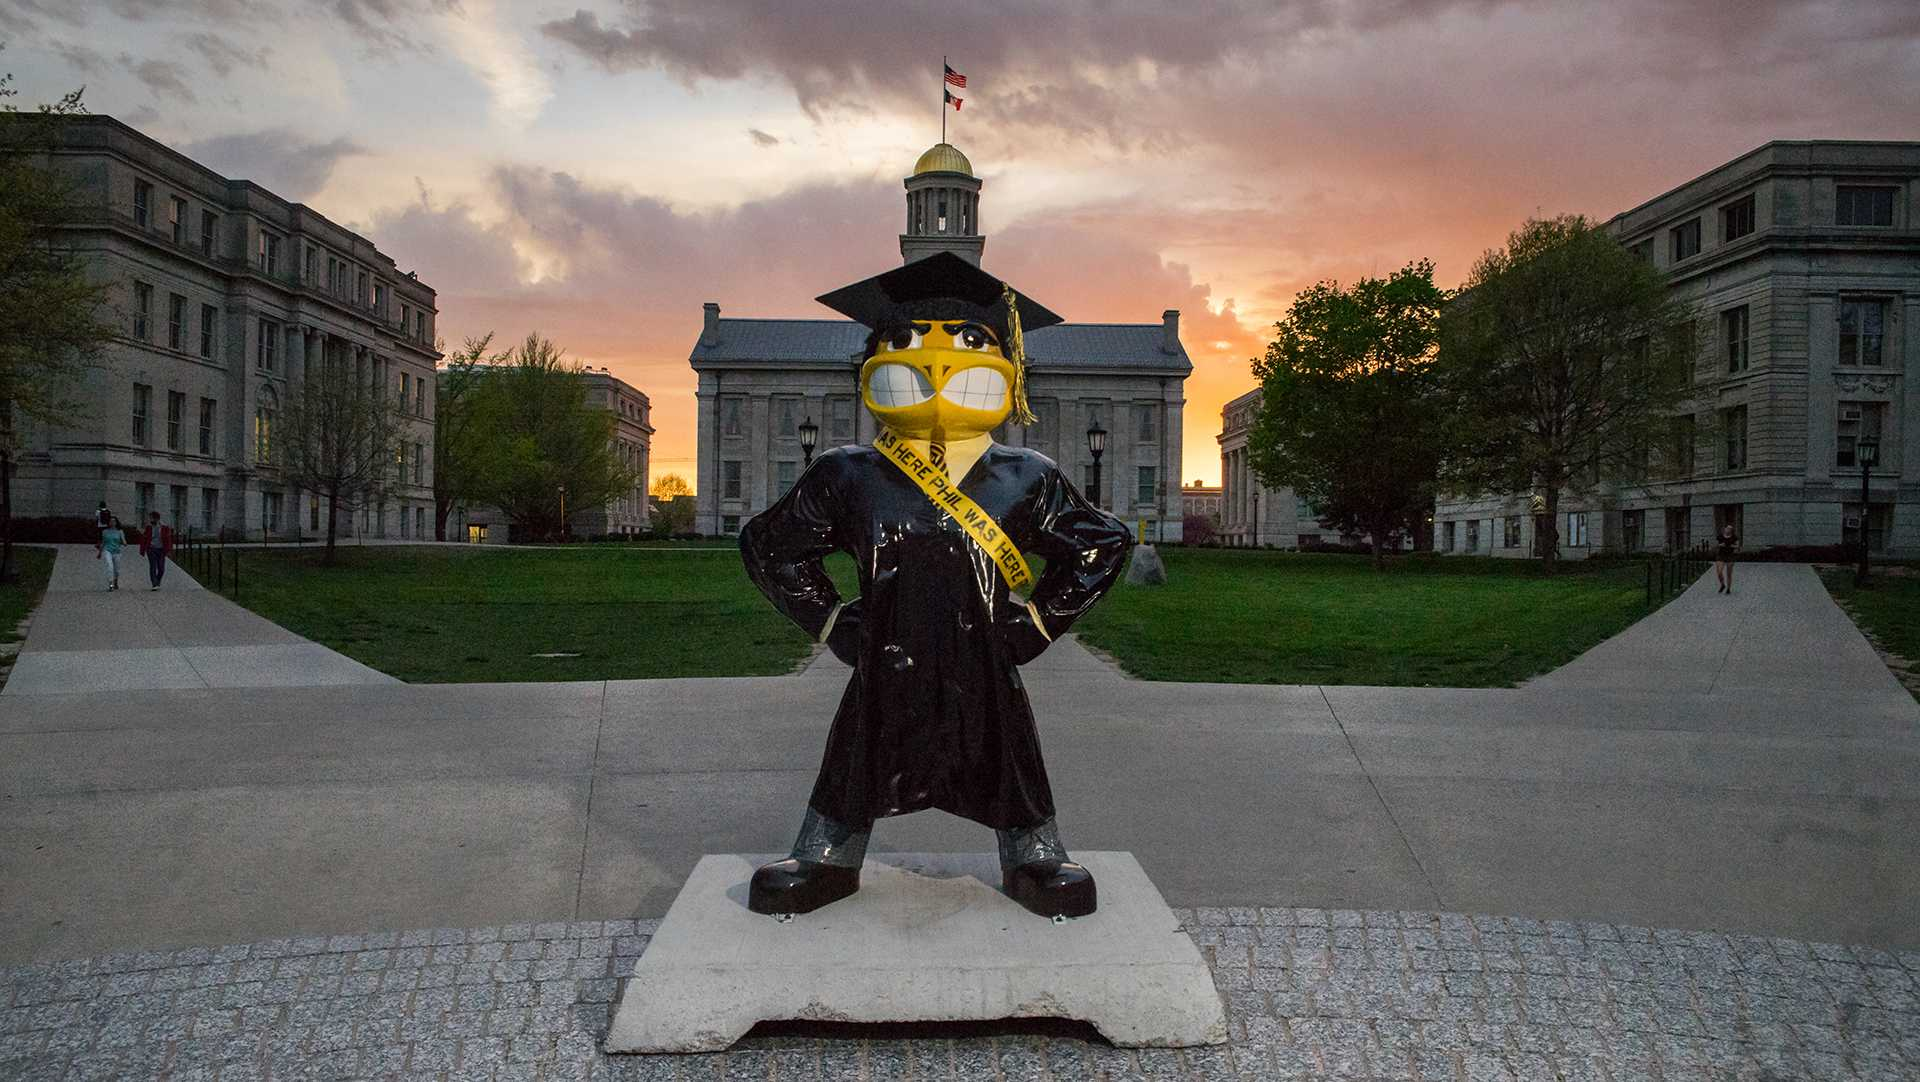 A Herky statue with a